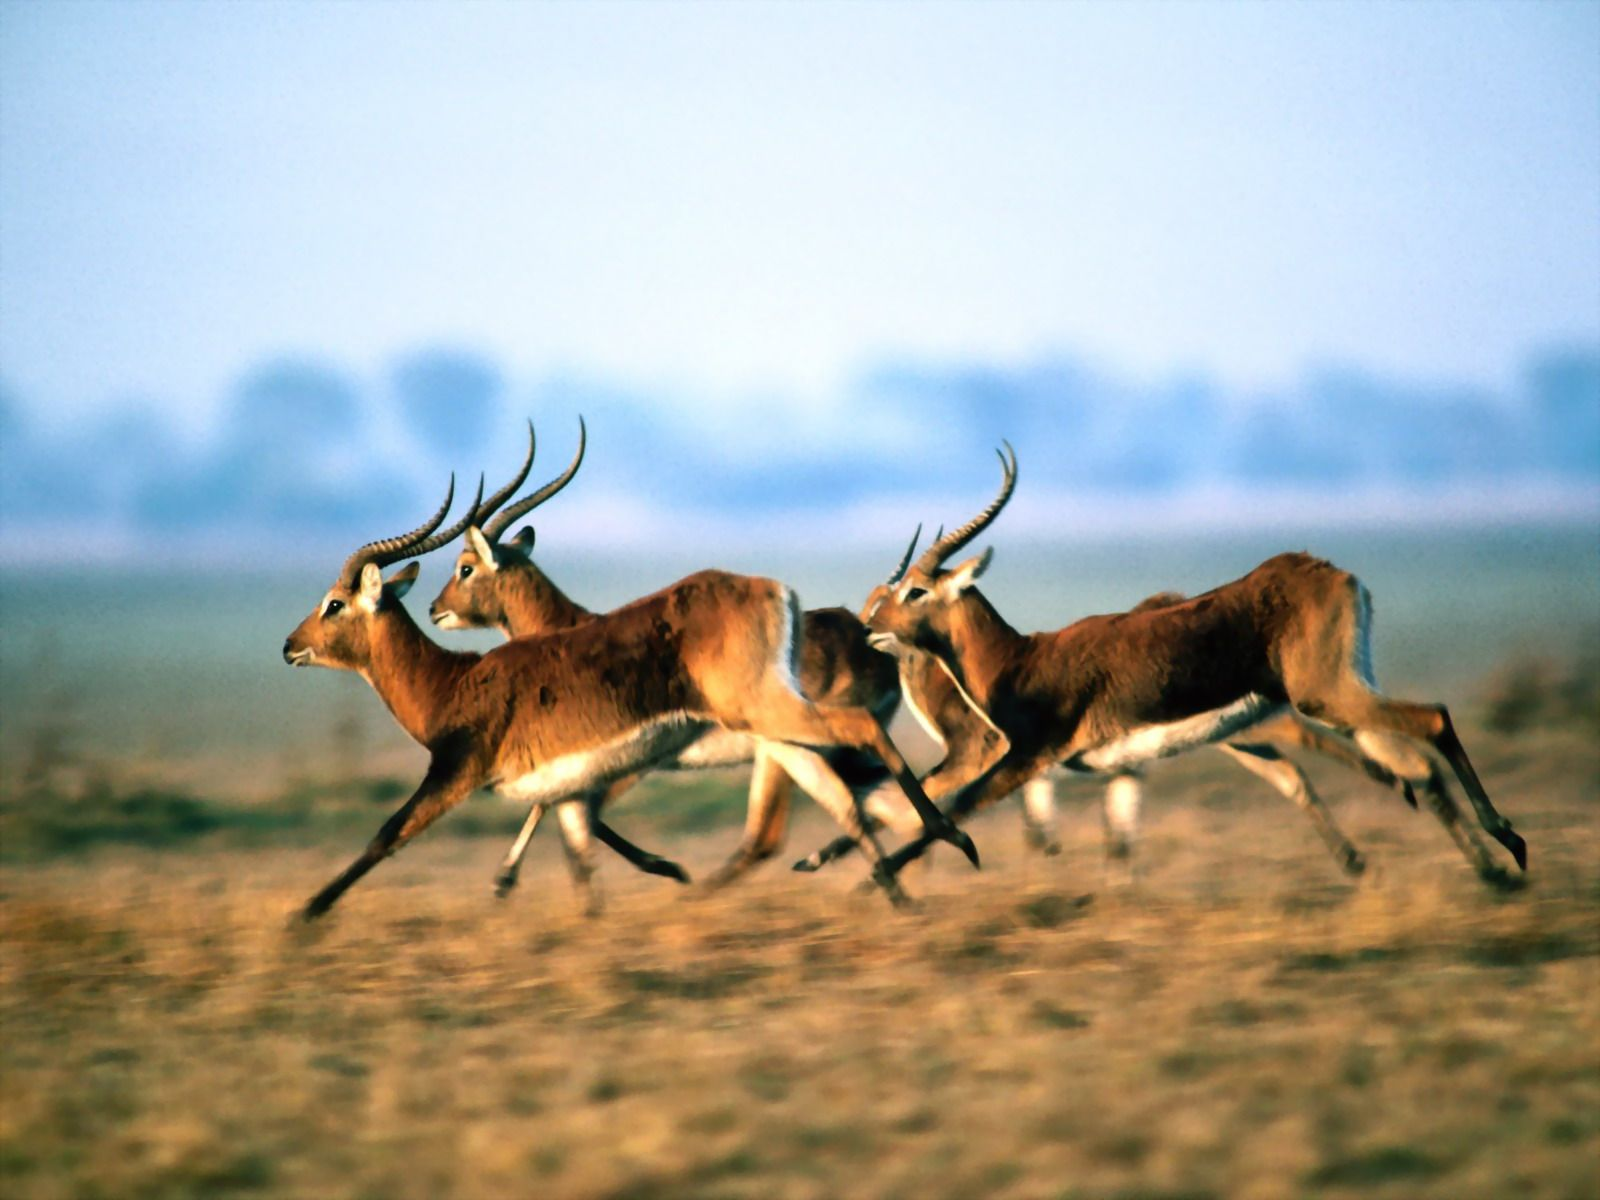 A herd of antelope wallpapers photo images picture a herd of antelope